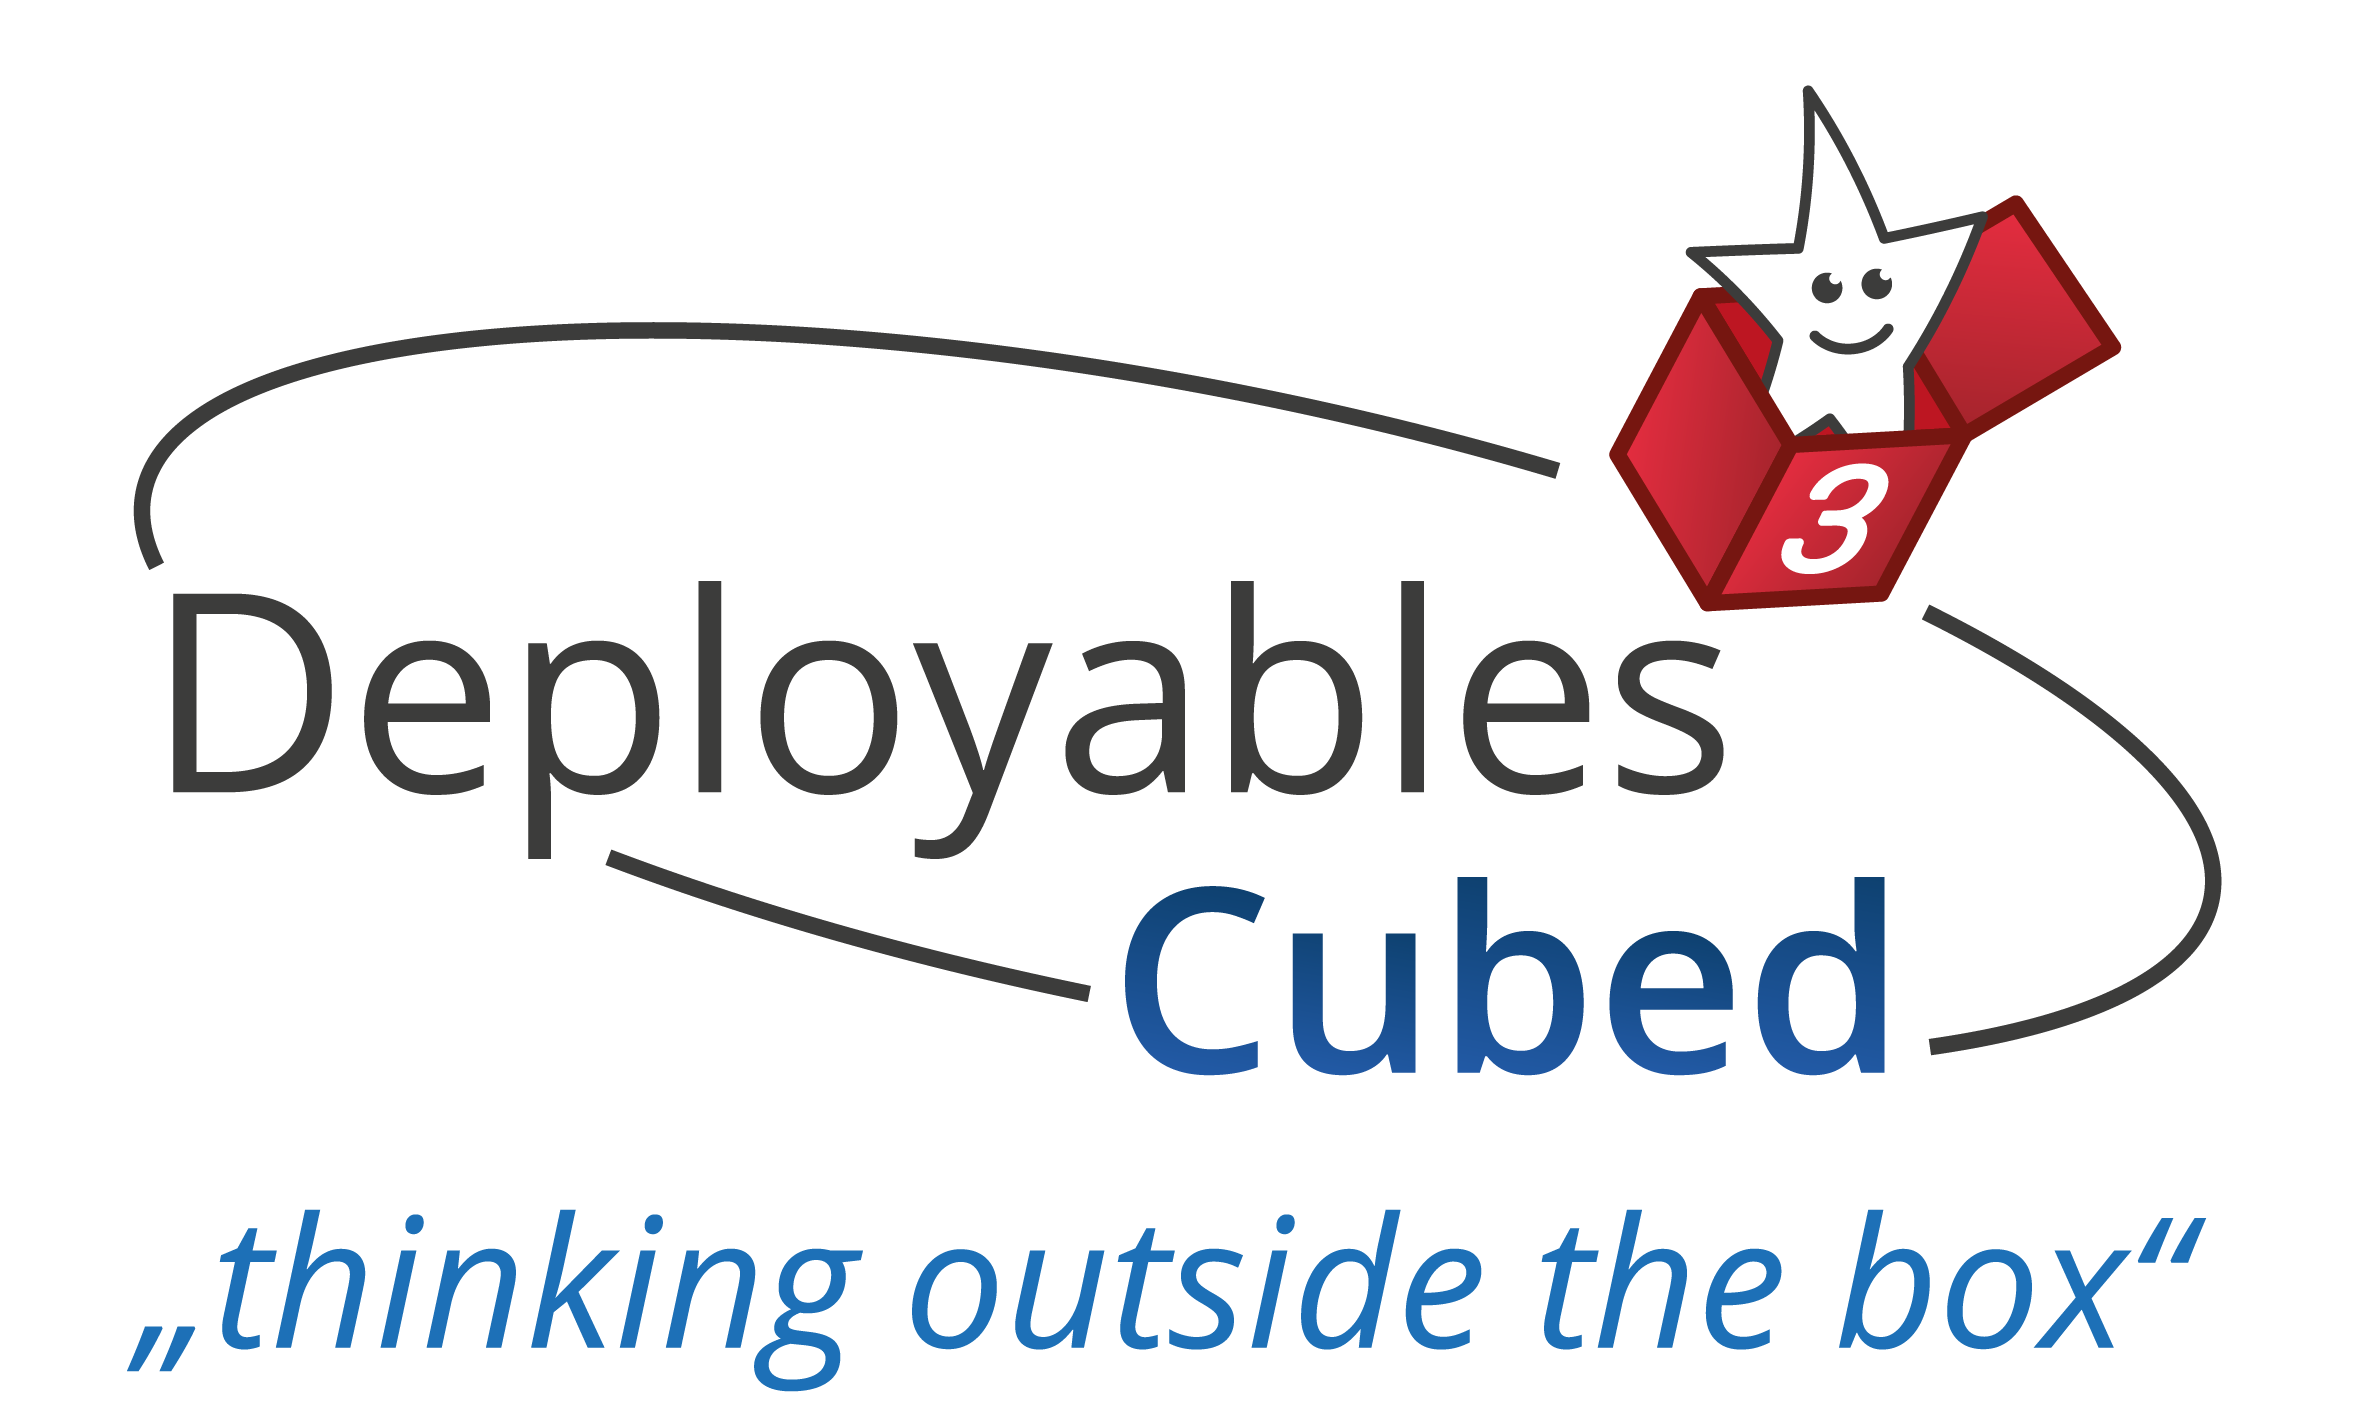 Deployables Cubed